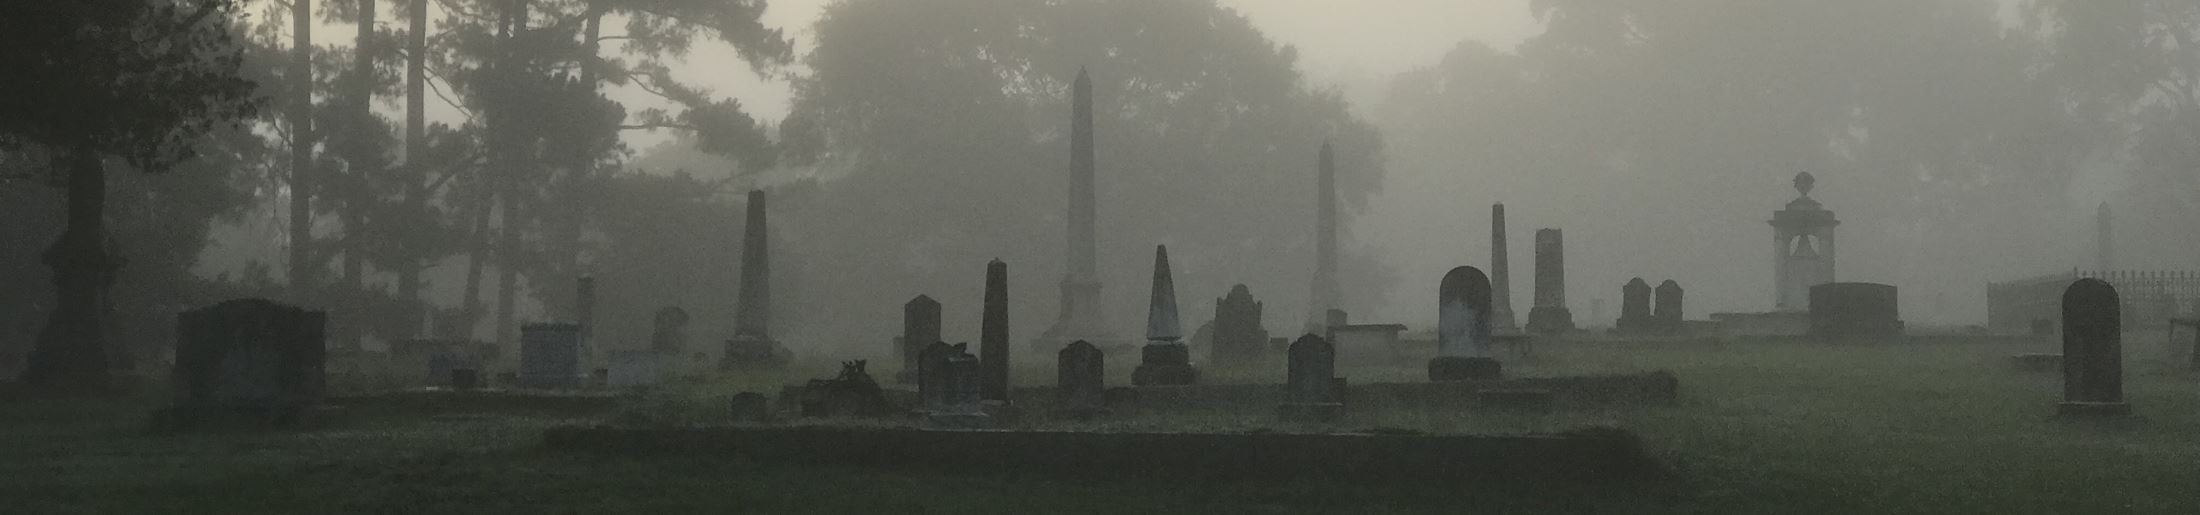 fog over Old Cemetery